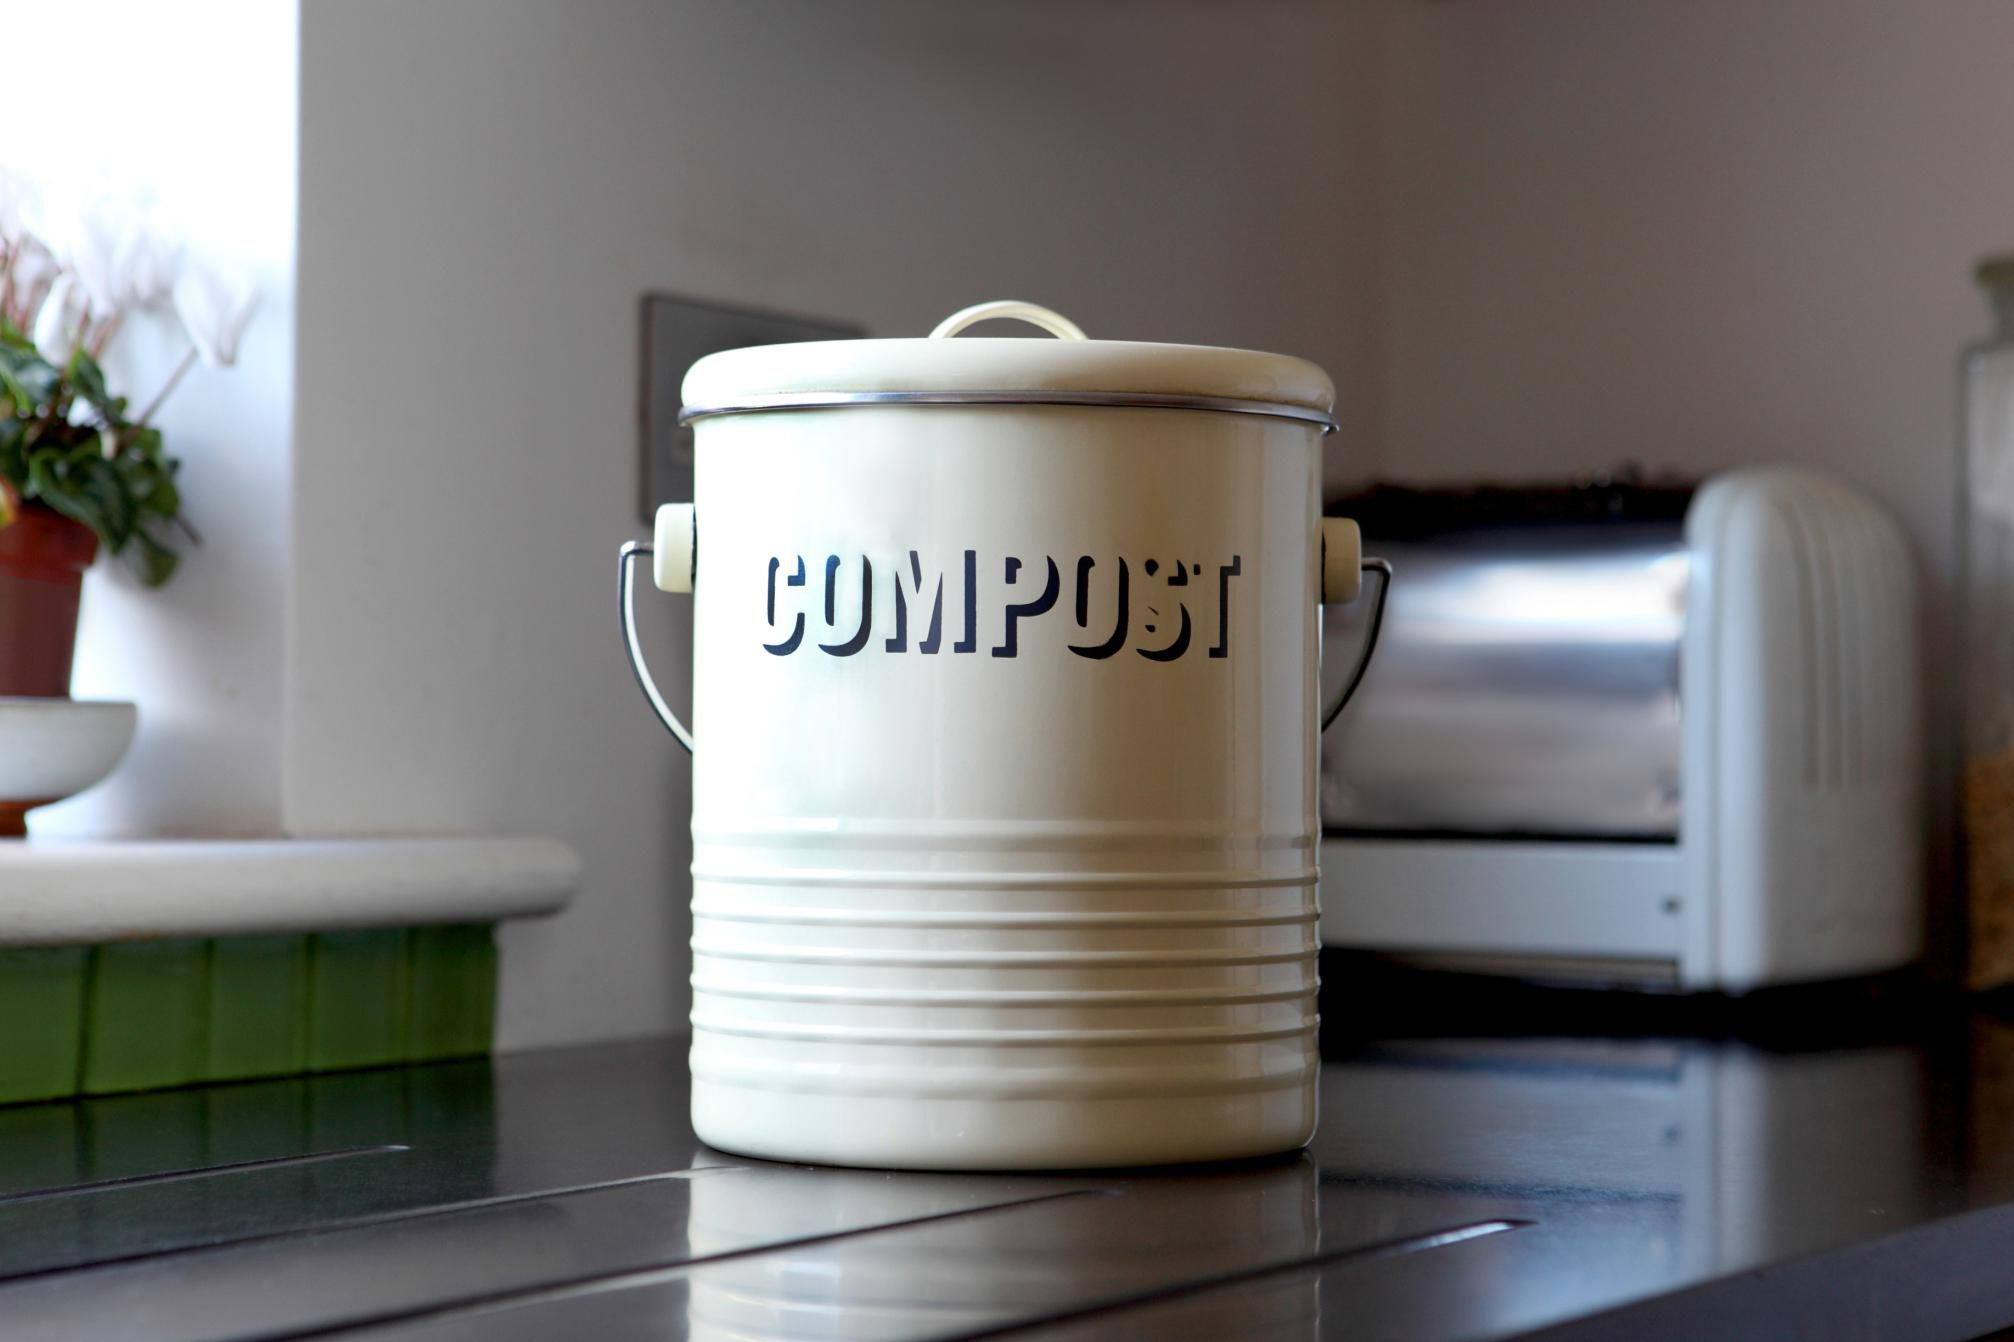 A compost bin in a kitchen